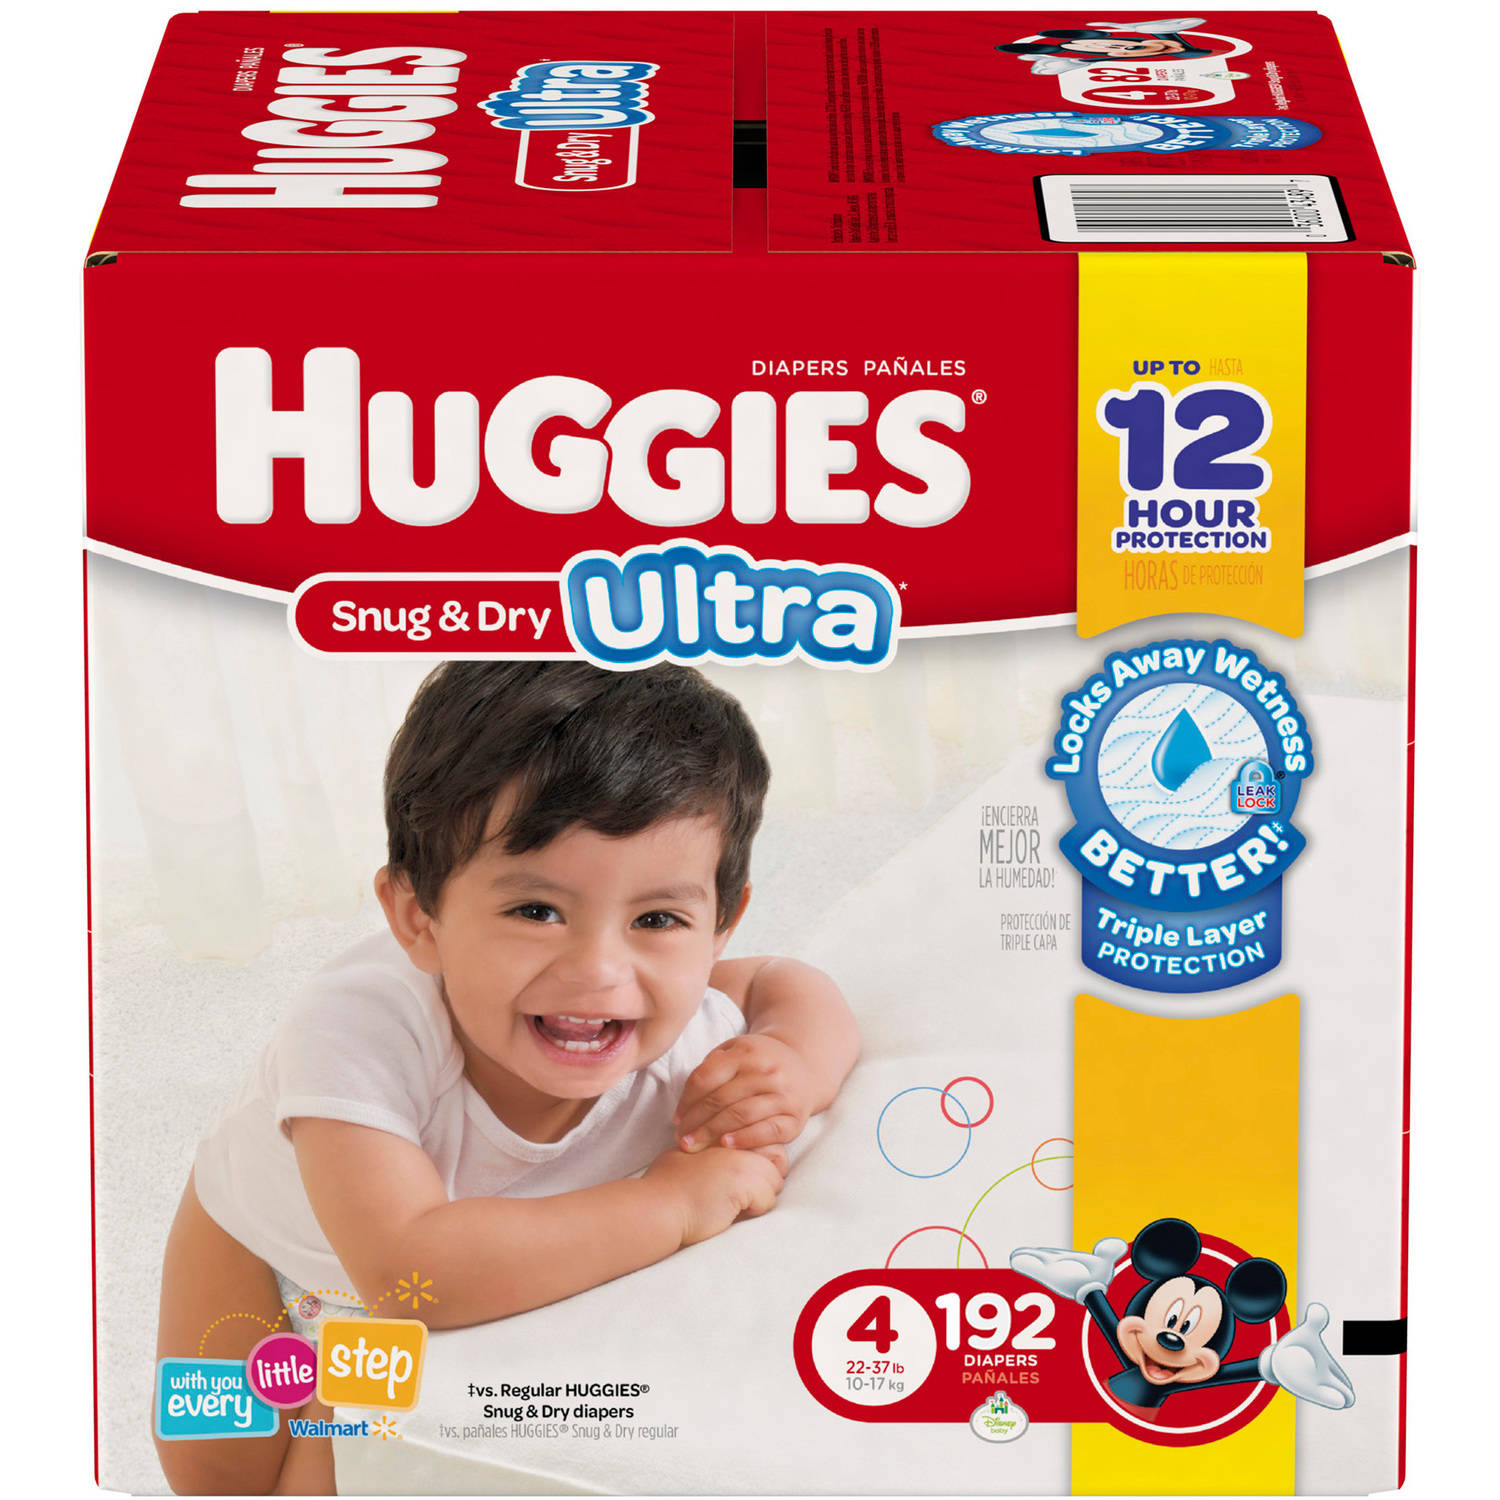 HUGGIES Snug & Dry Ultra Diapers, Size 4 (Choose Diaper Count)